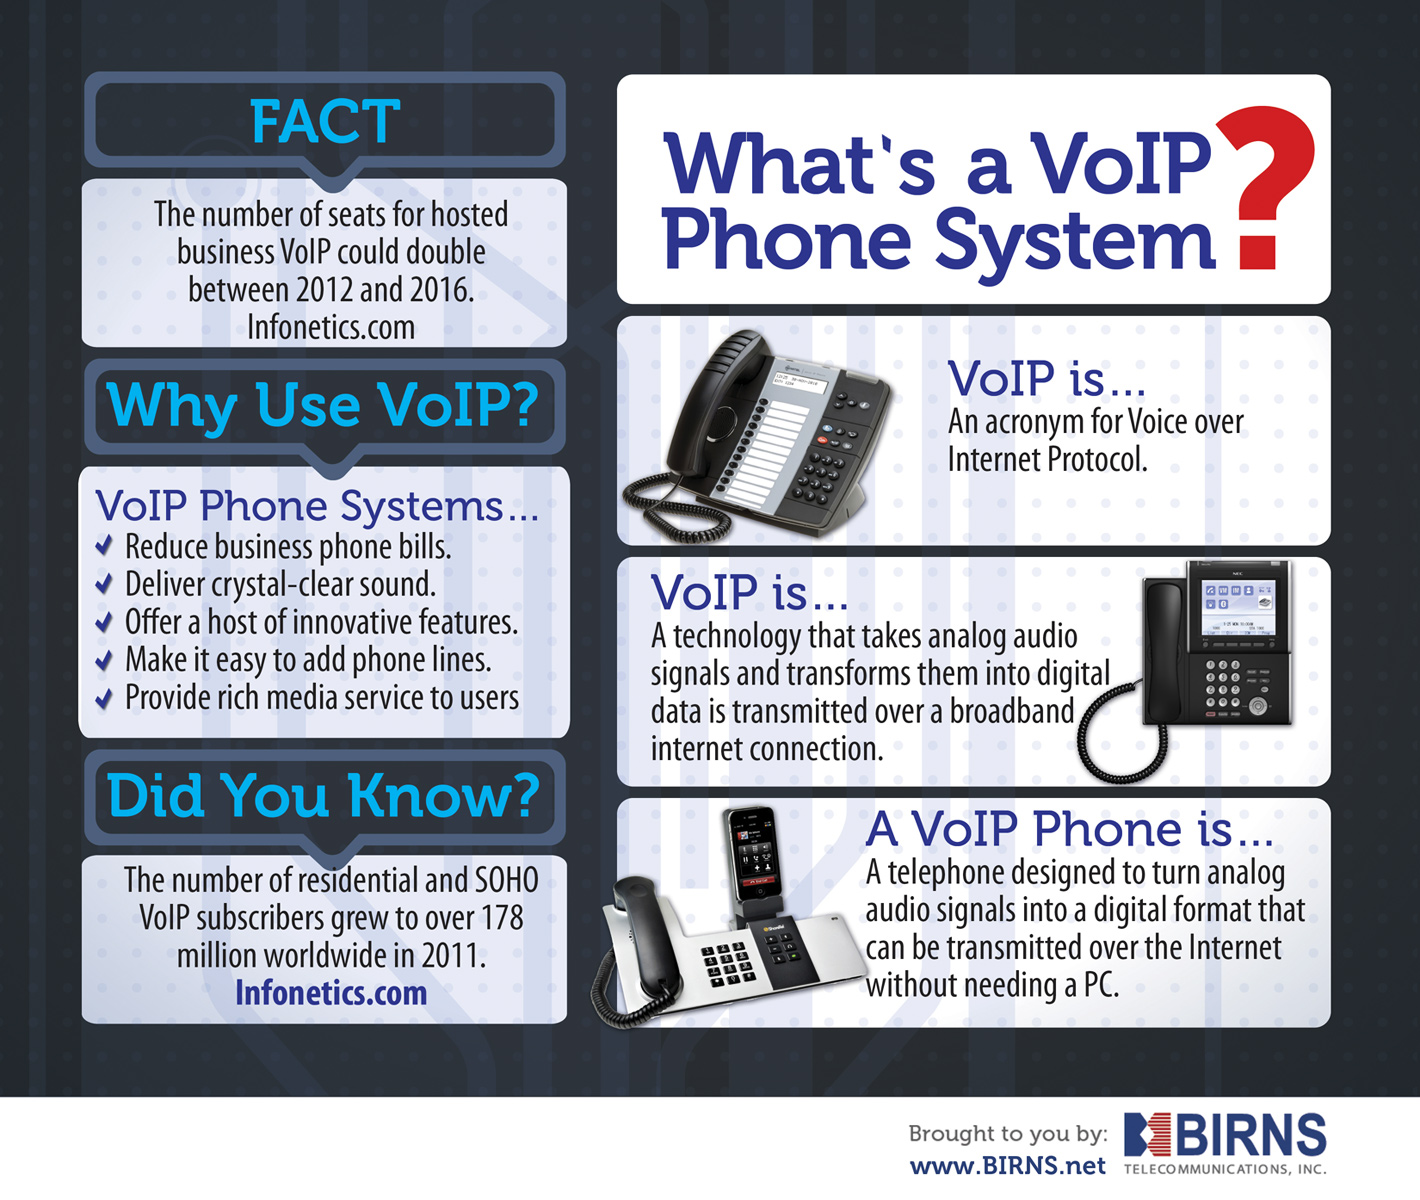 VoIP Phone Systems Infographic: What is a VoIP Phone?